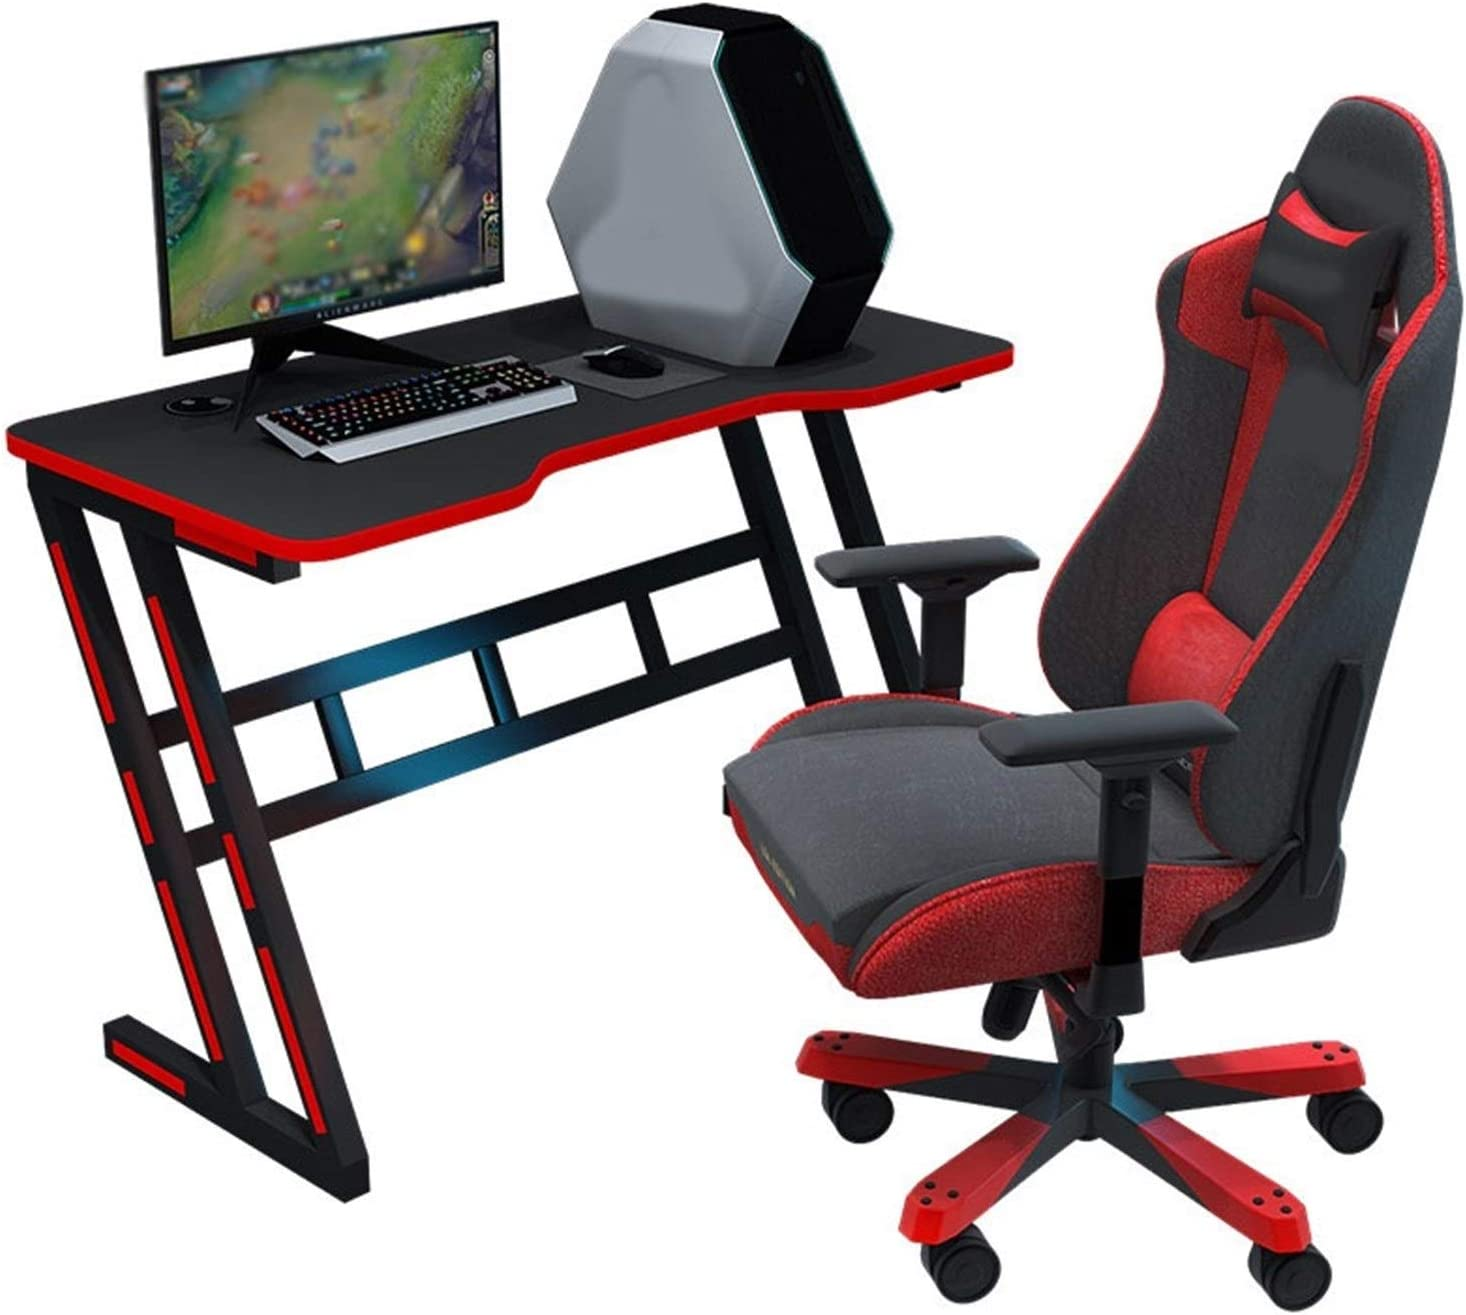 BUYT Video Game Table and We OFFer at cheap prices Max 87% OFF Gamer Professional Desk E-Sport Chair